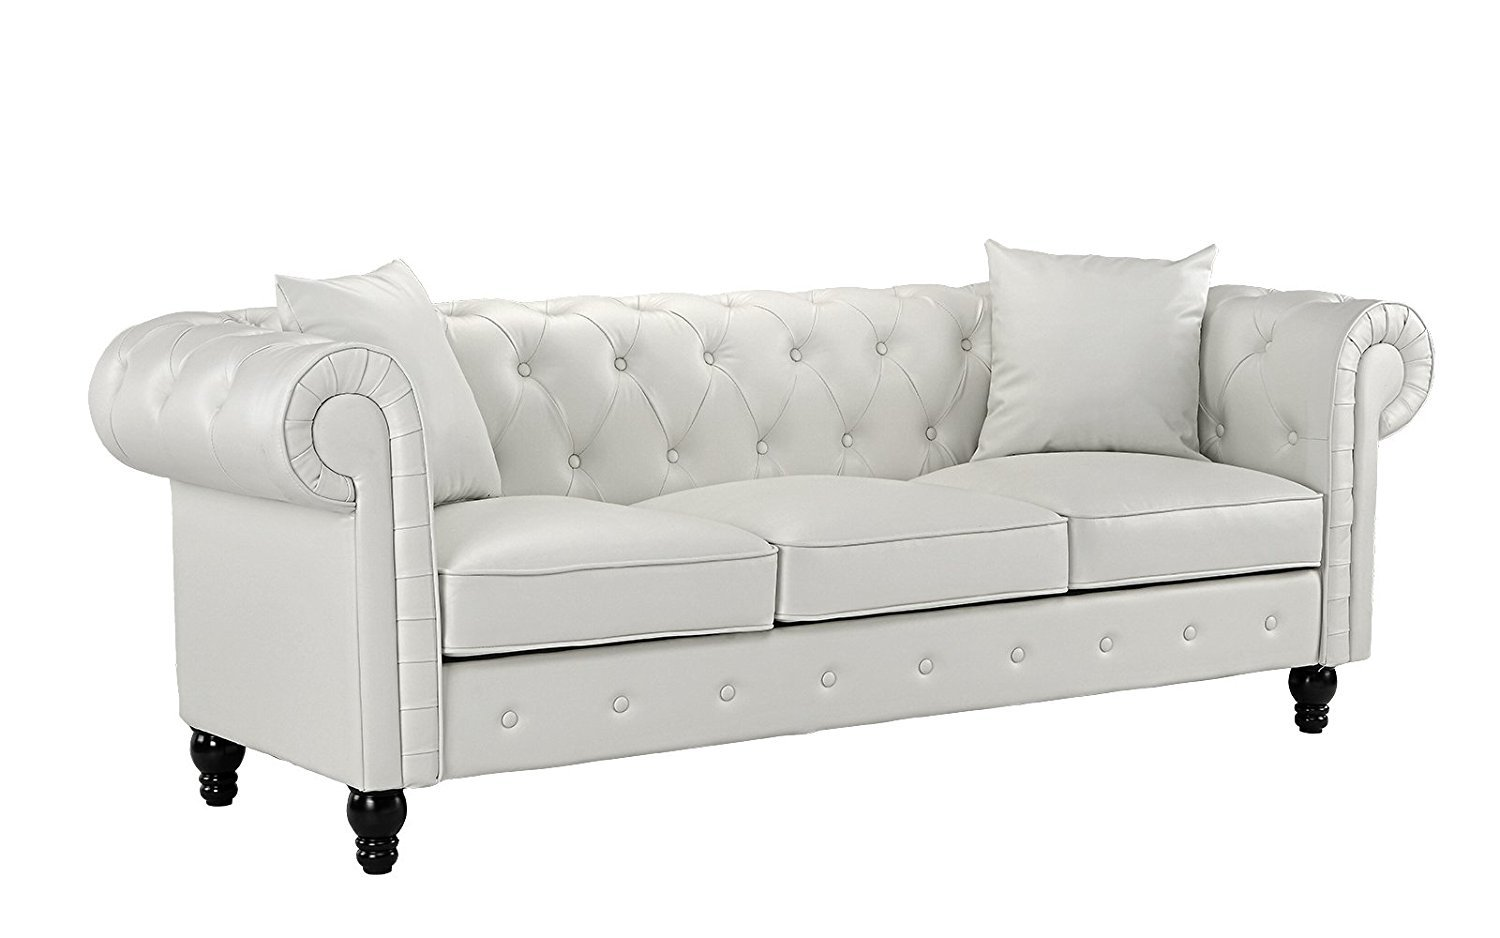 Classic Living Room Bonded Leather Scroll Arm Chesterfield Sofa ...